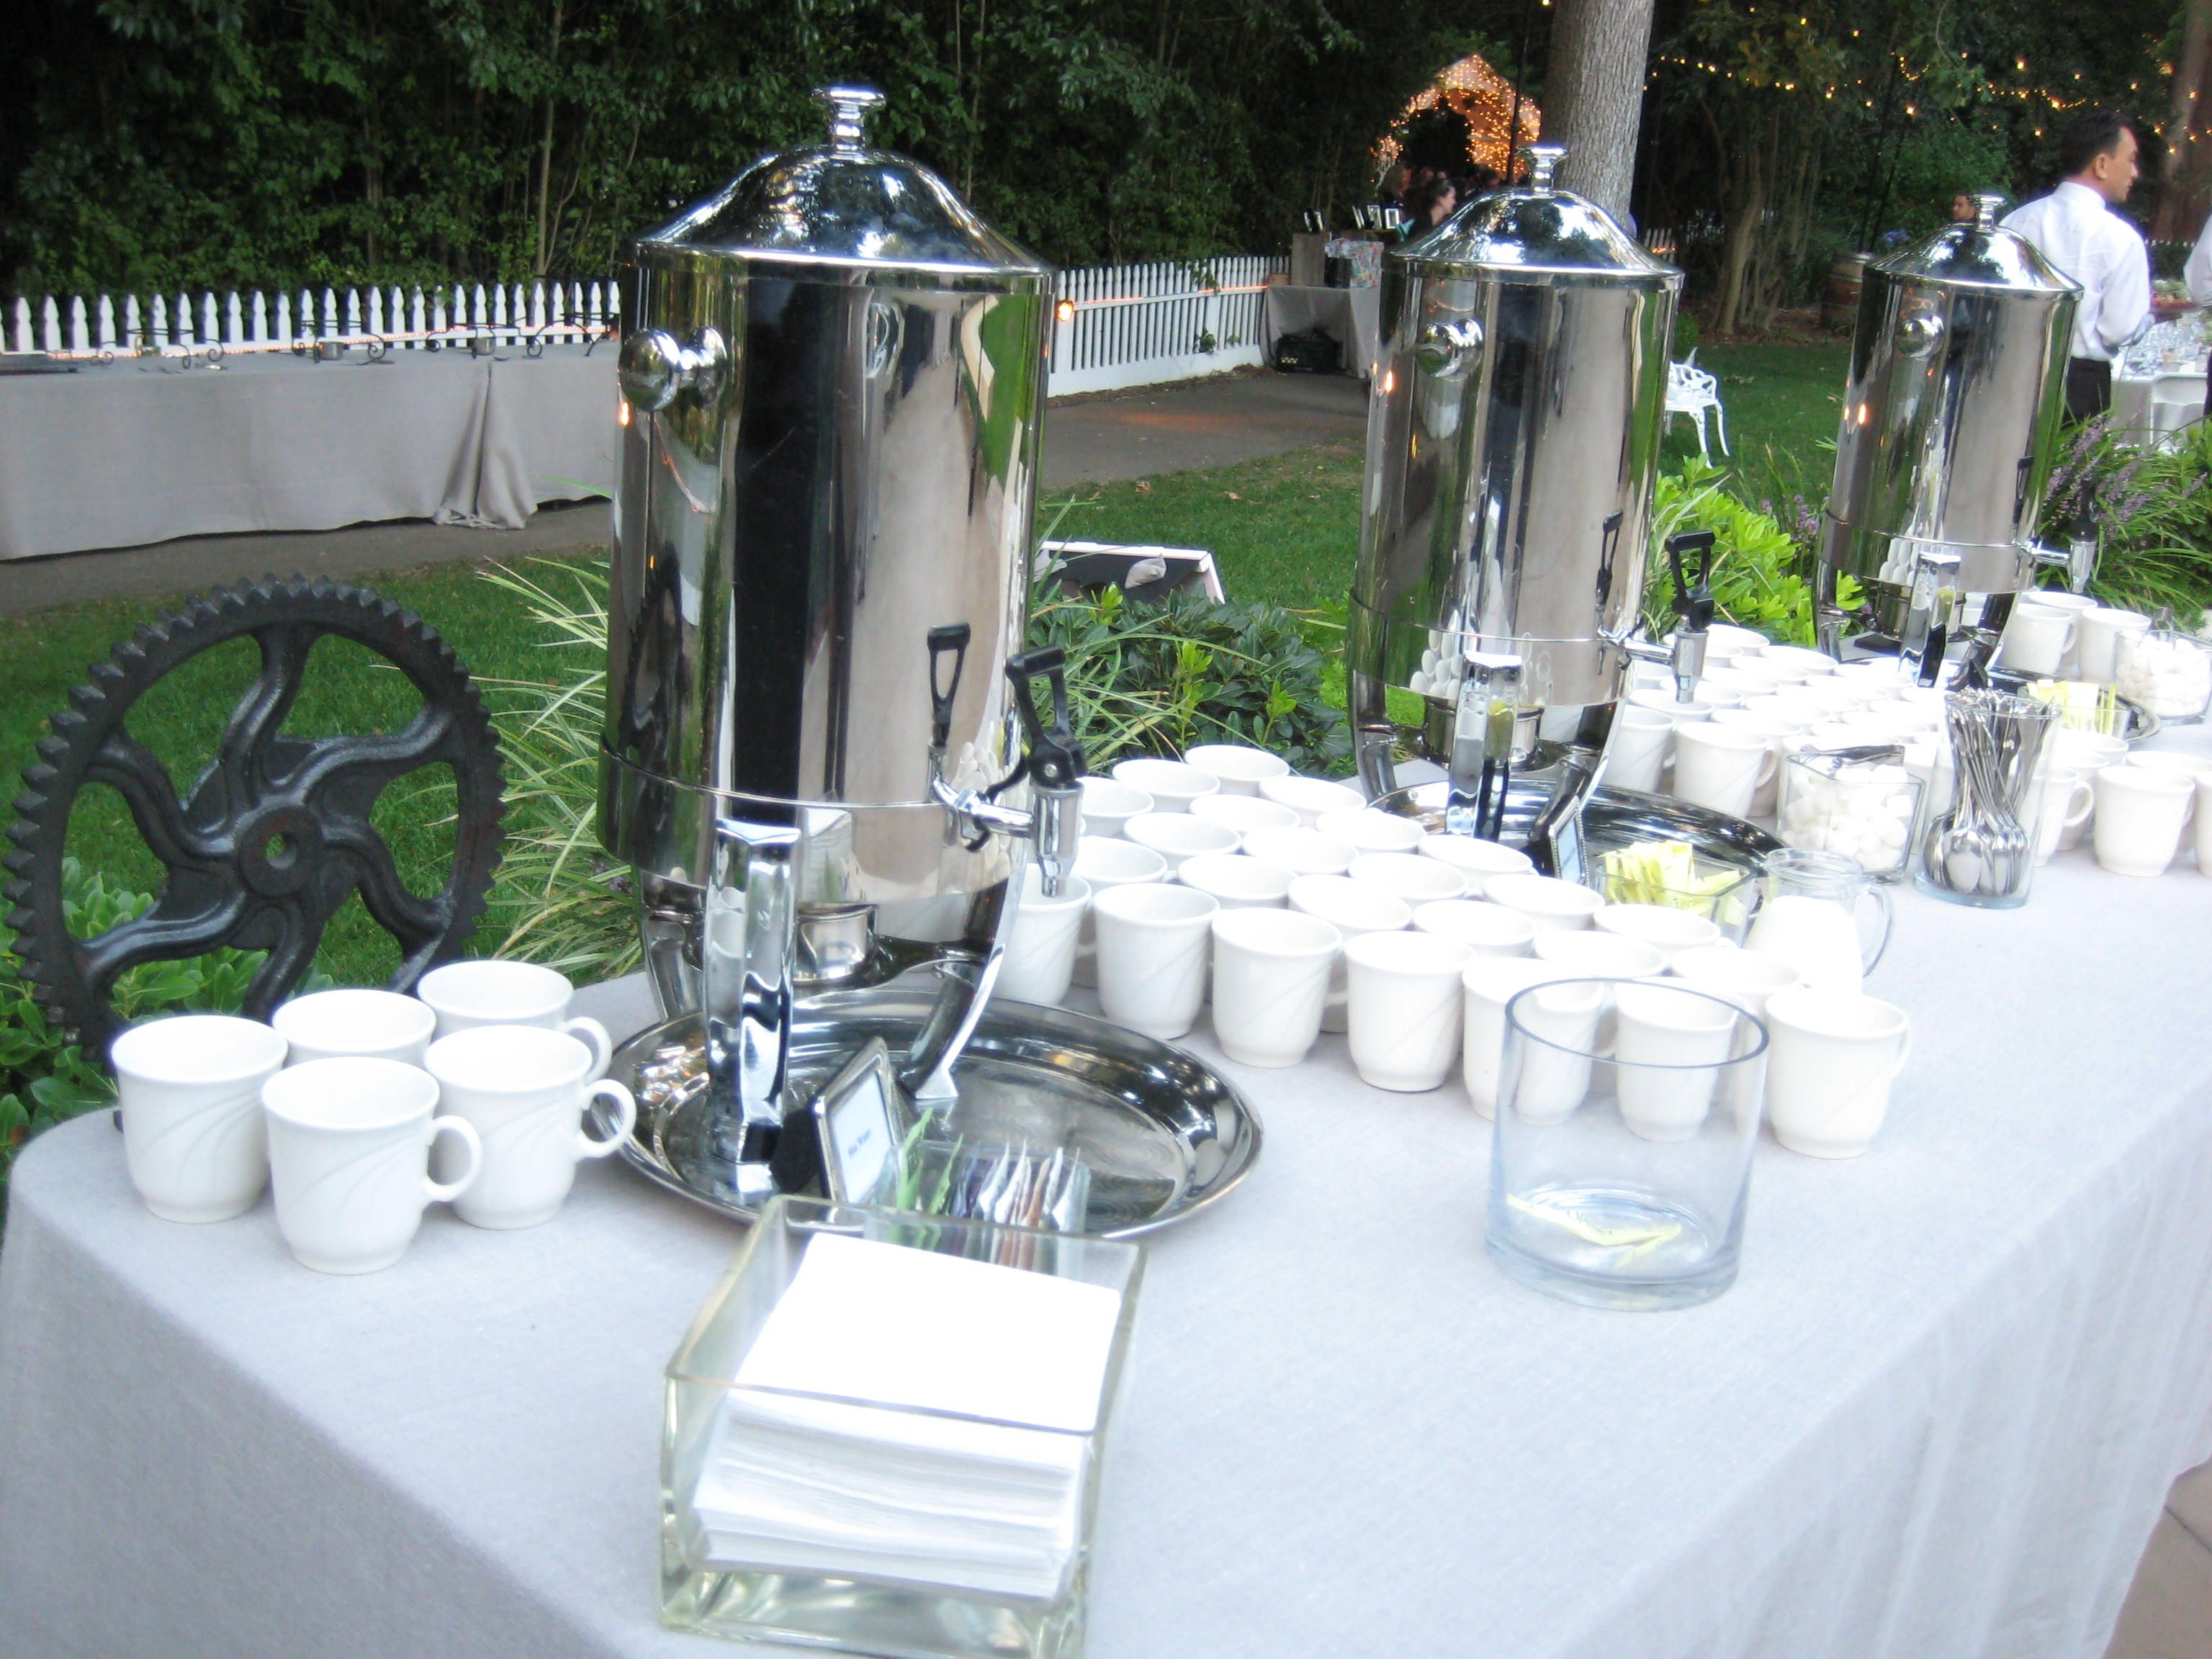 Coffee station overview. Coffee break catering, Coffee